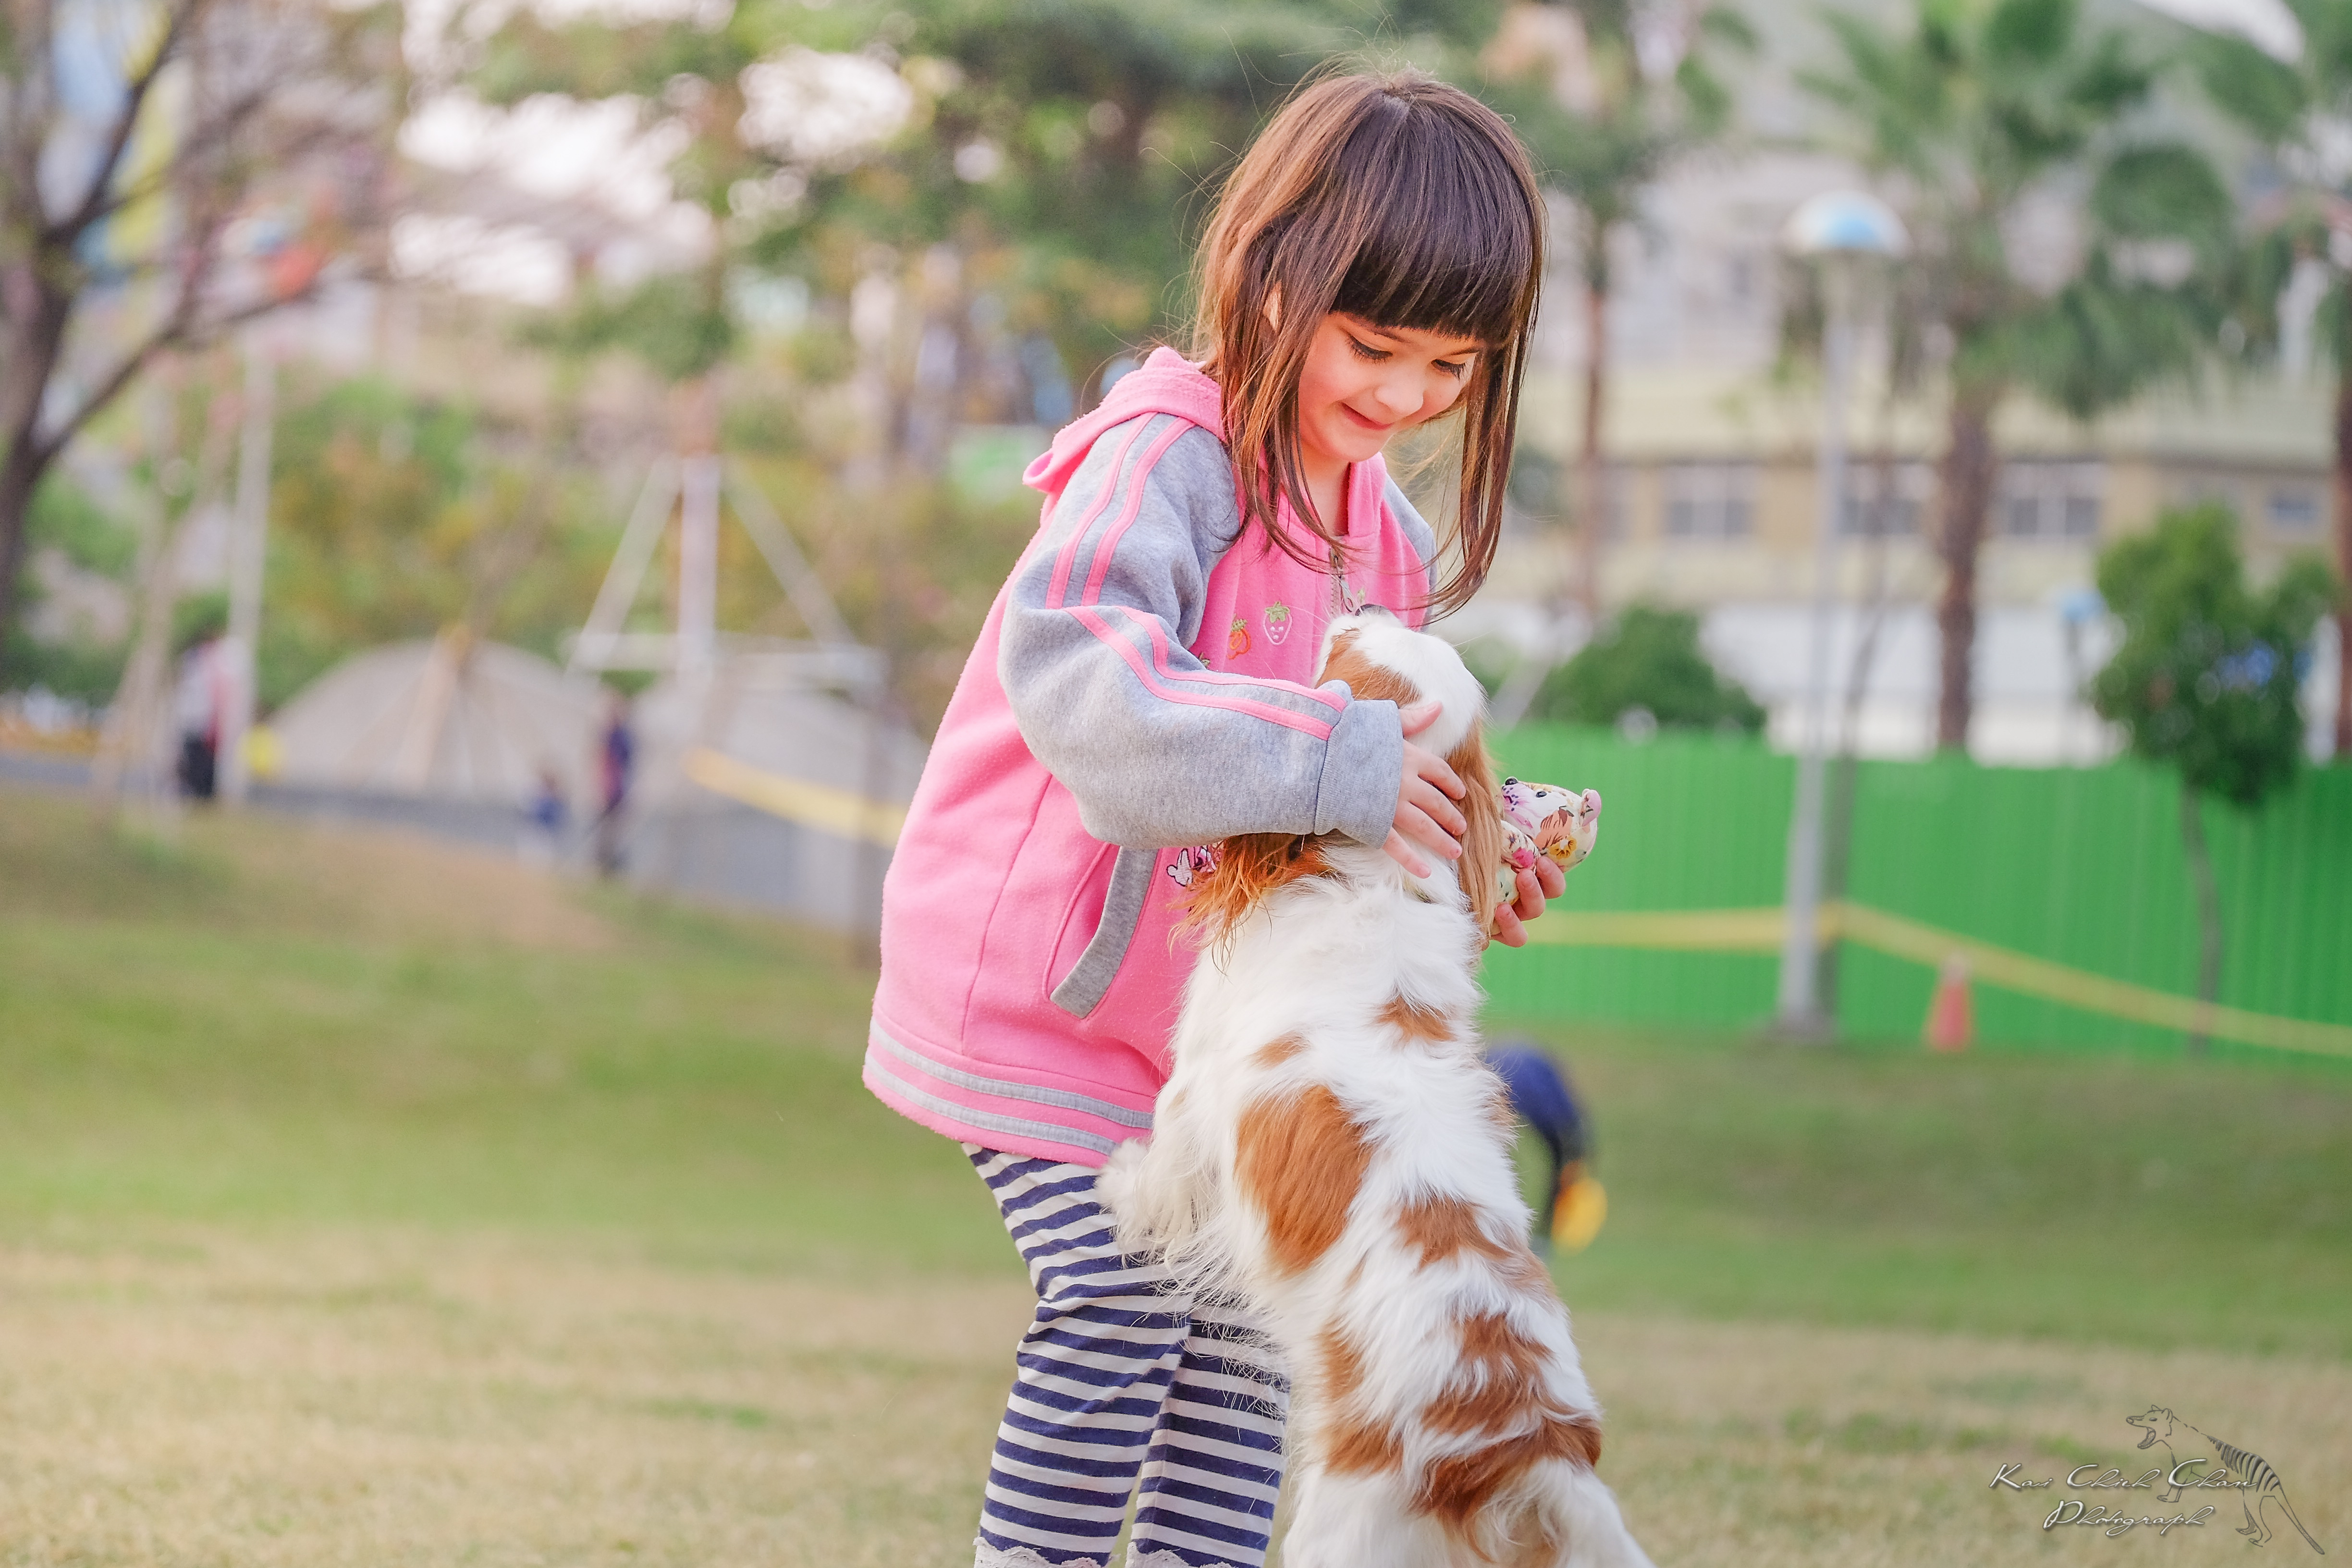 The Dog Owner in Training Tent offers resources for kids who are  dog owners or dog lovers